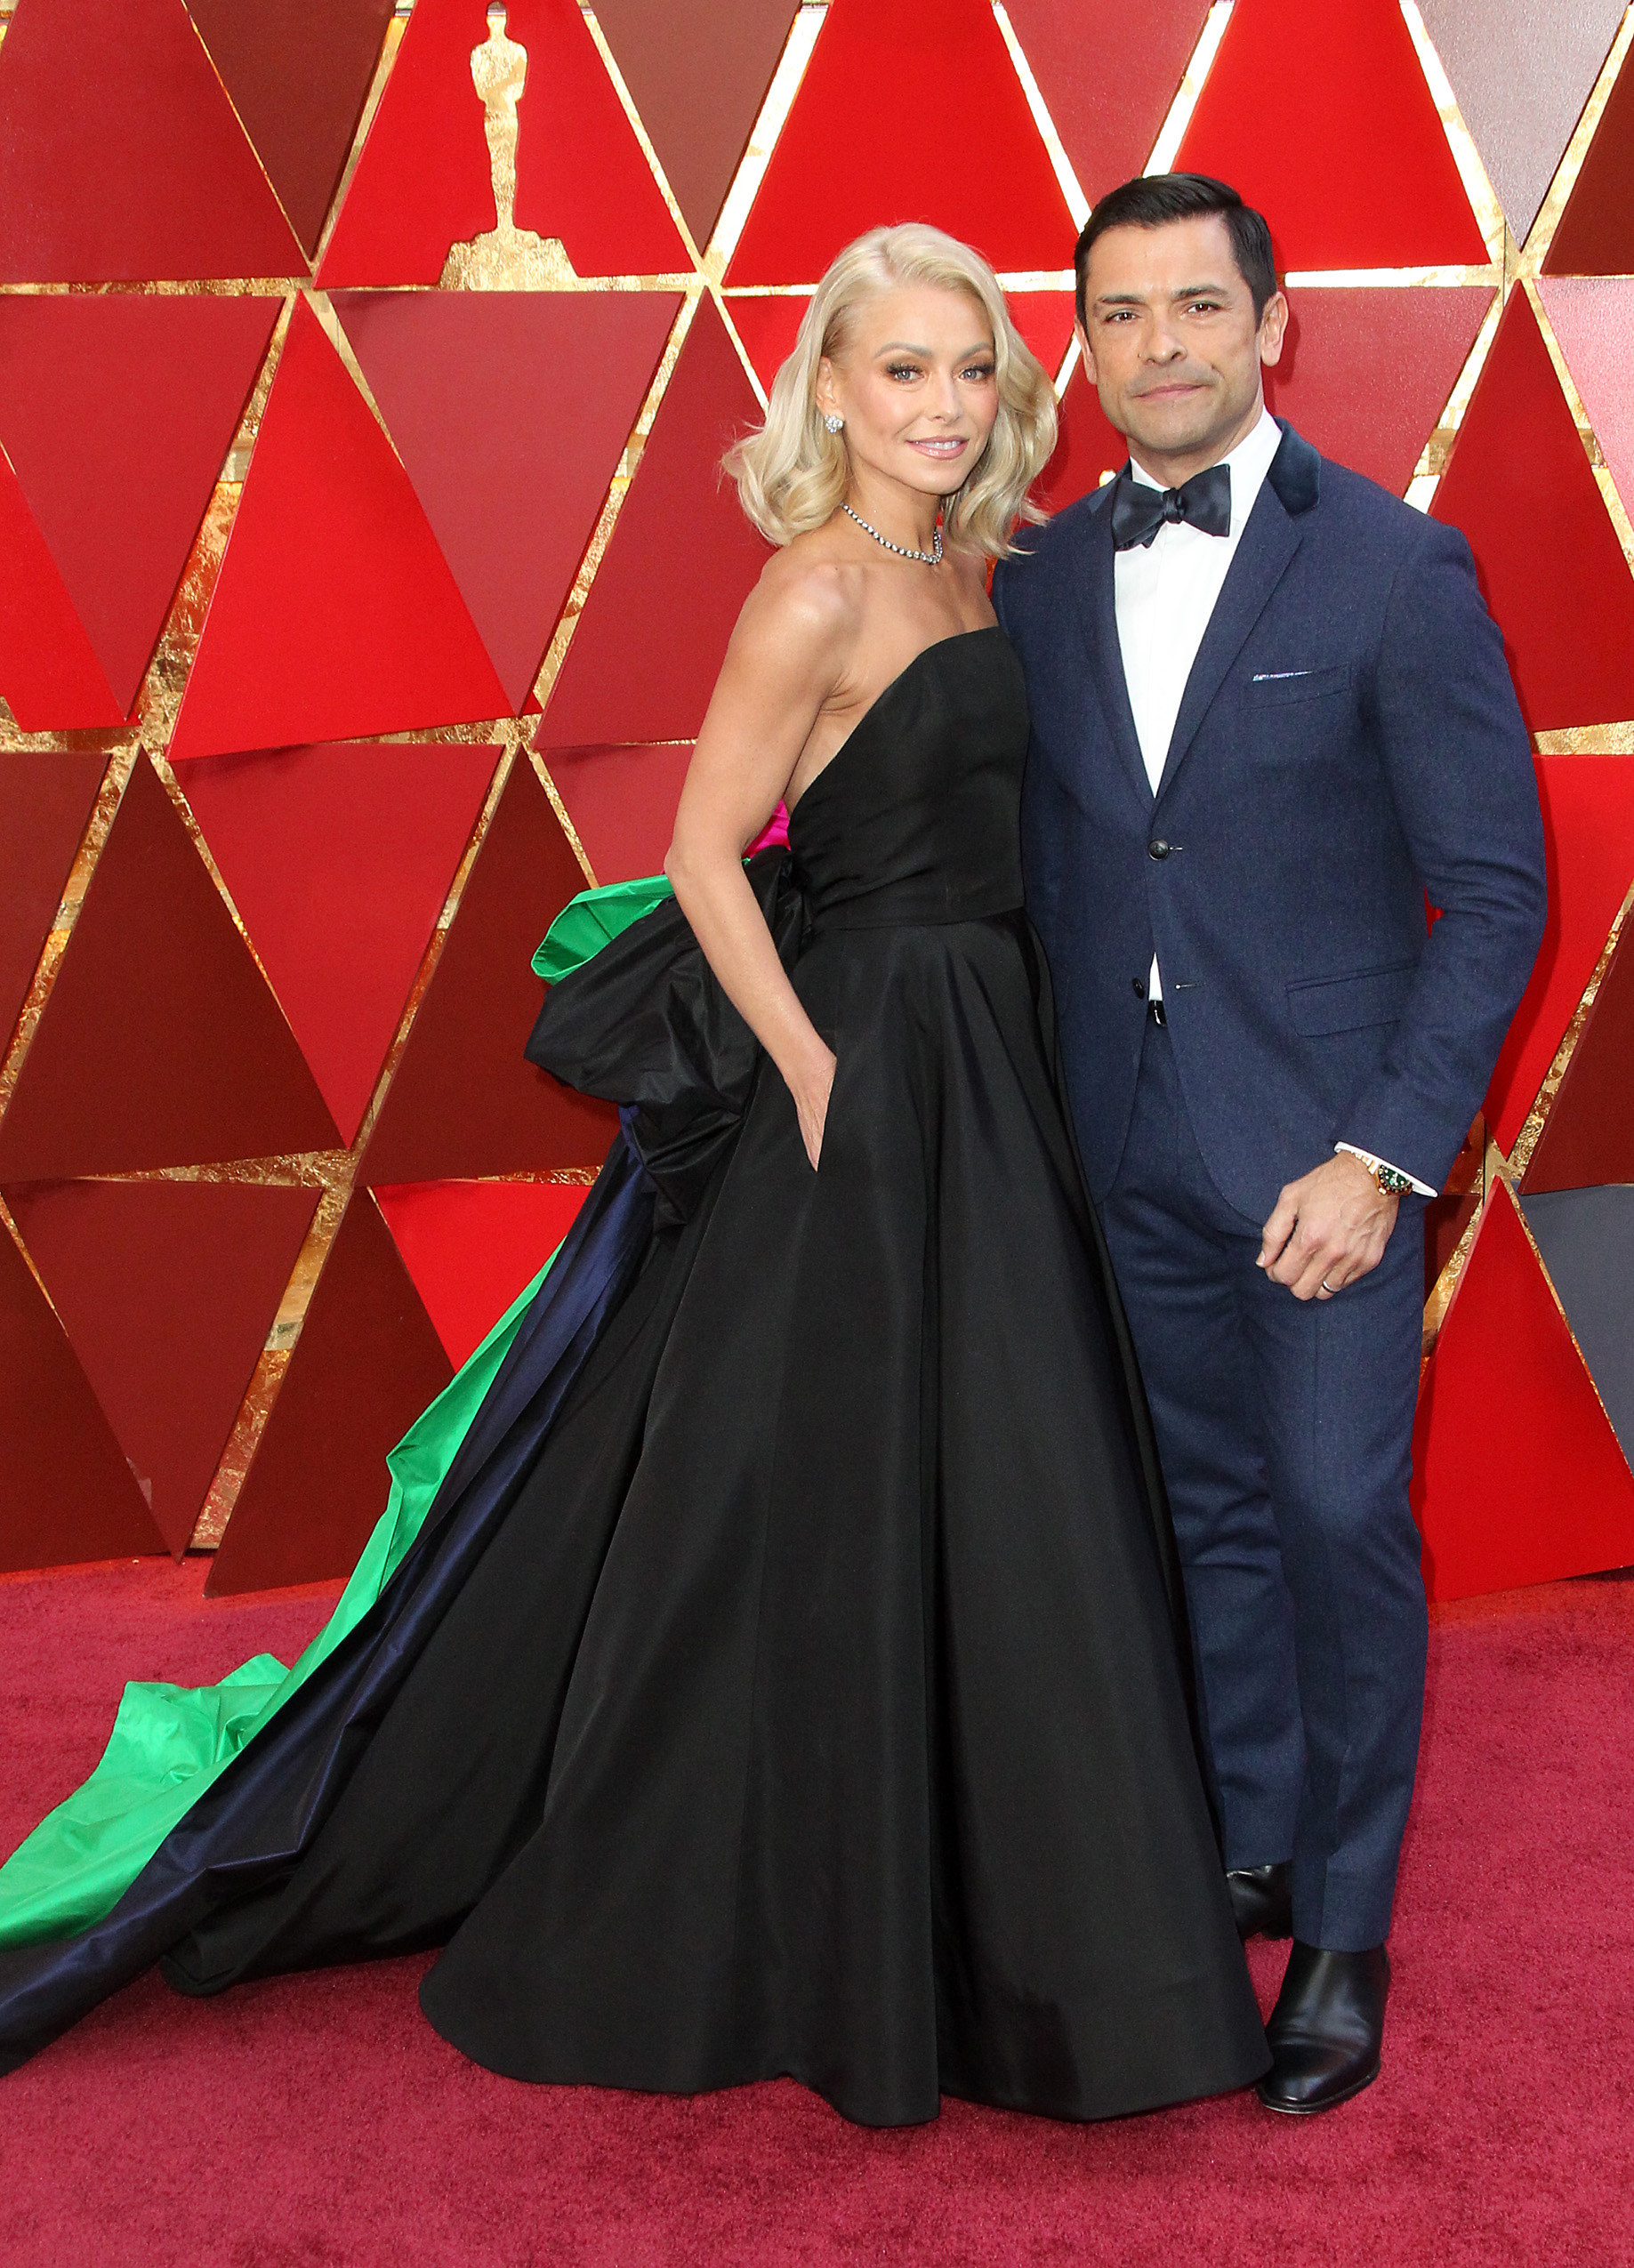 Kelly Ripa and Mark Consuelos arrive at the 90th Annual Academy Awards (Oscars) held at the Dolby Theater in Hollywood, California. (Image: Adriana M. Barraza/WENN.com)